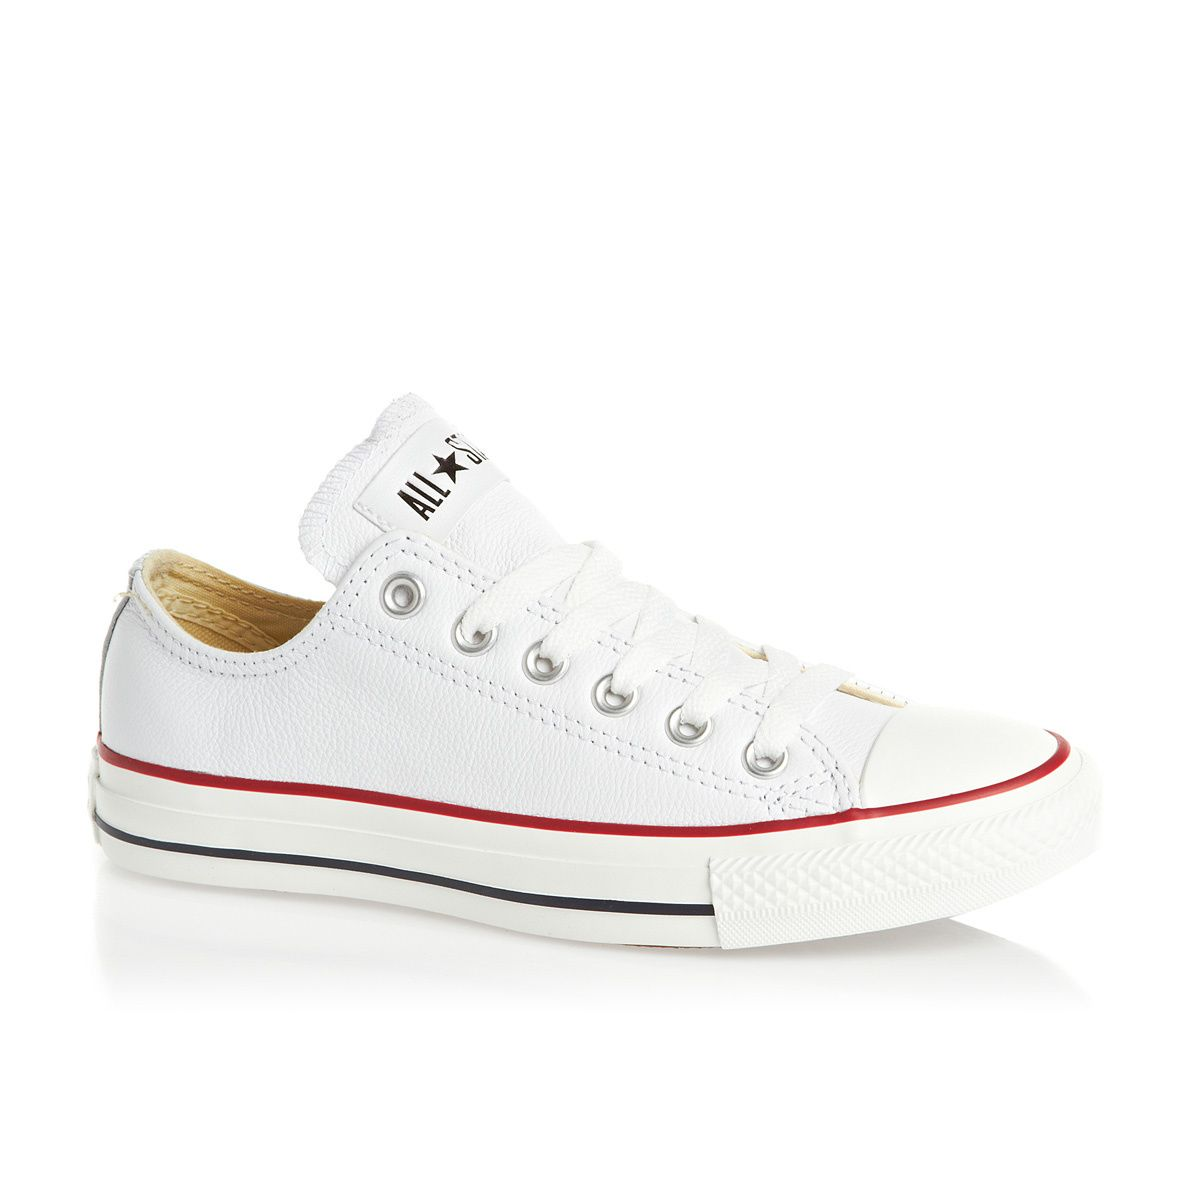 Converse femme blanche taille 35